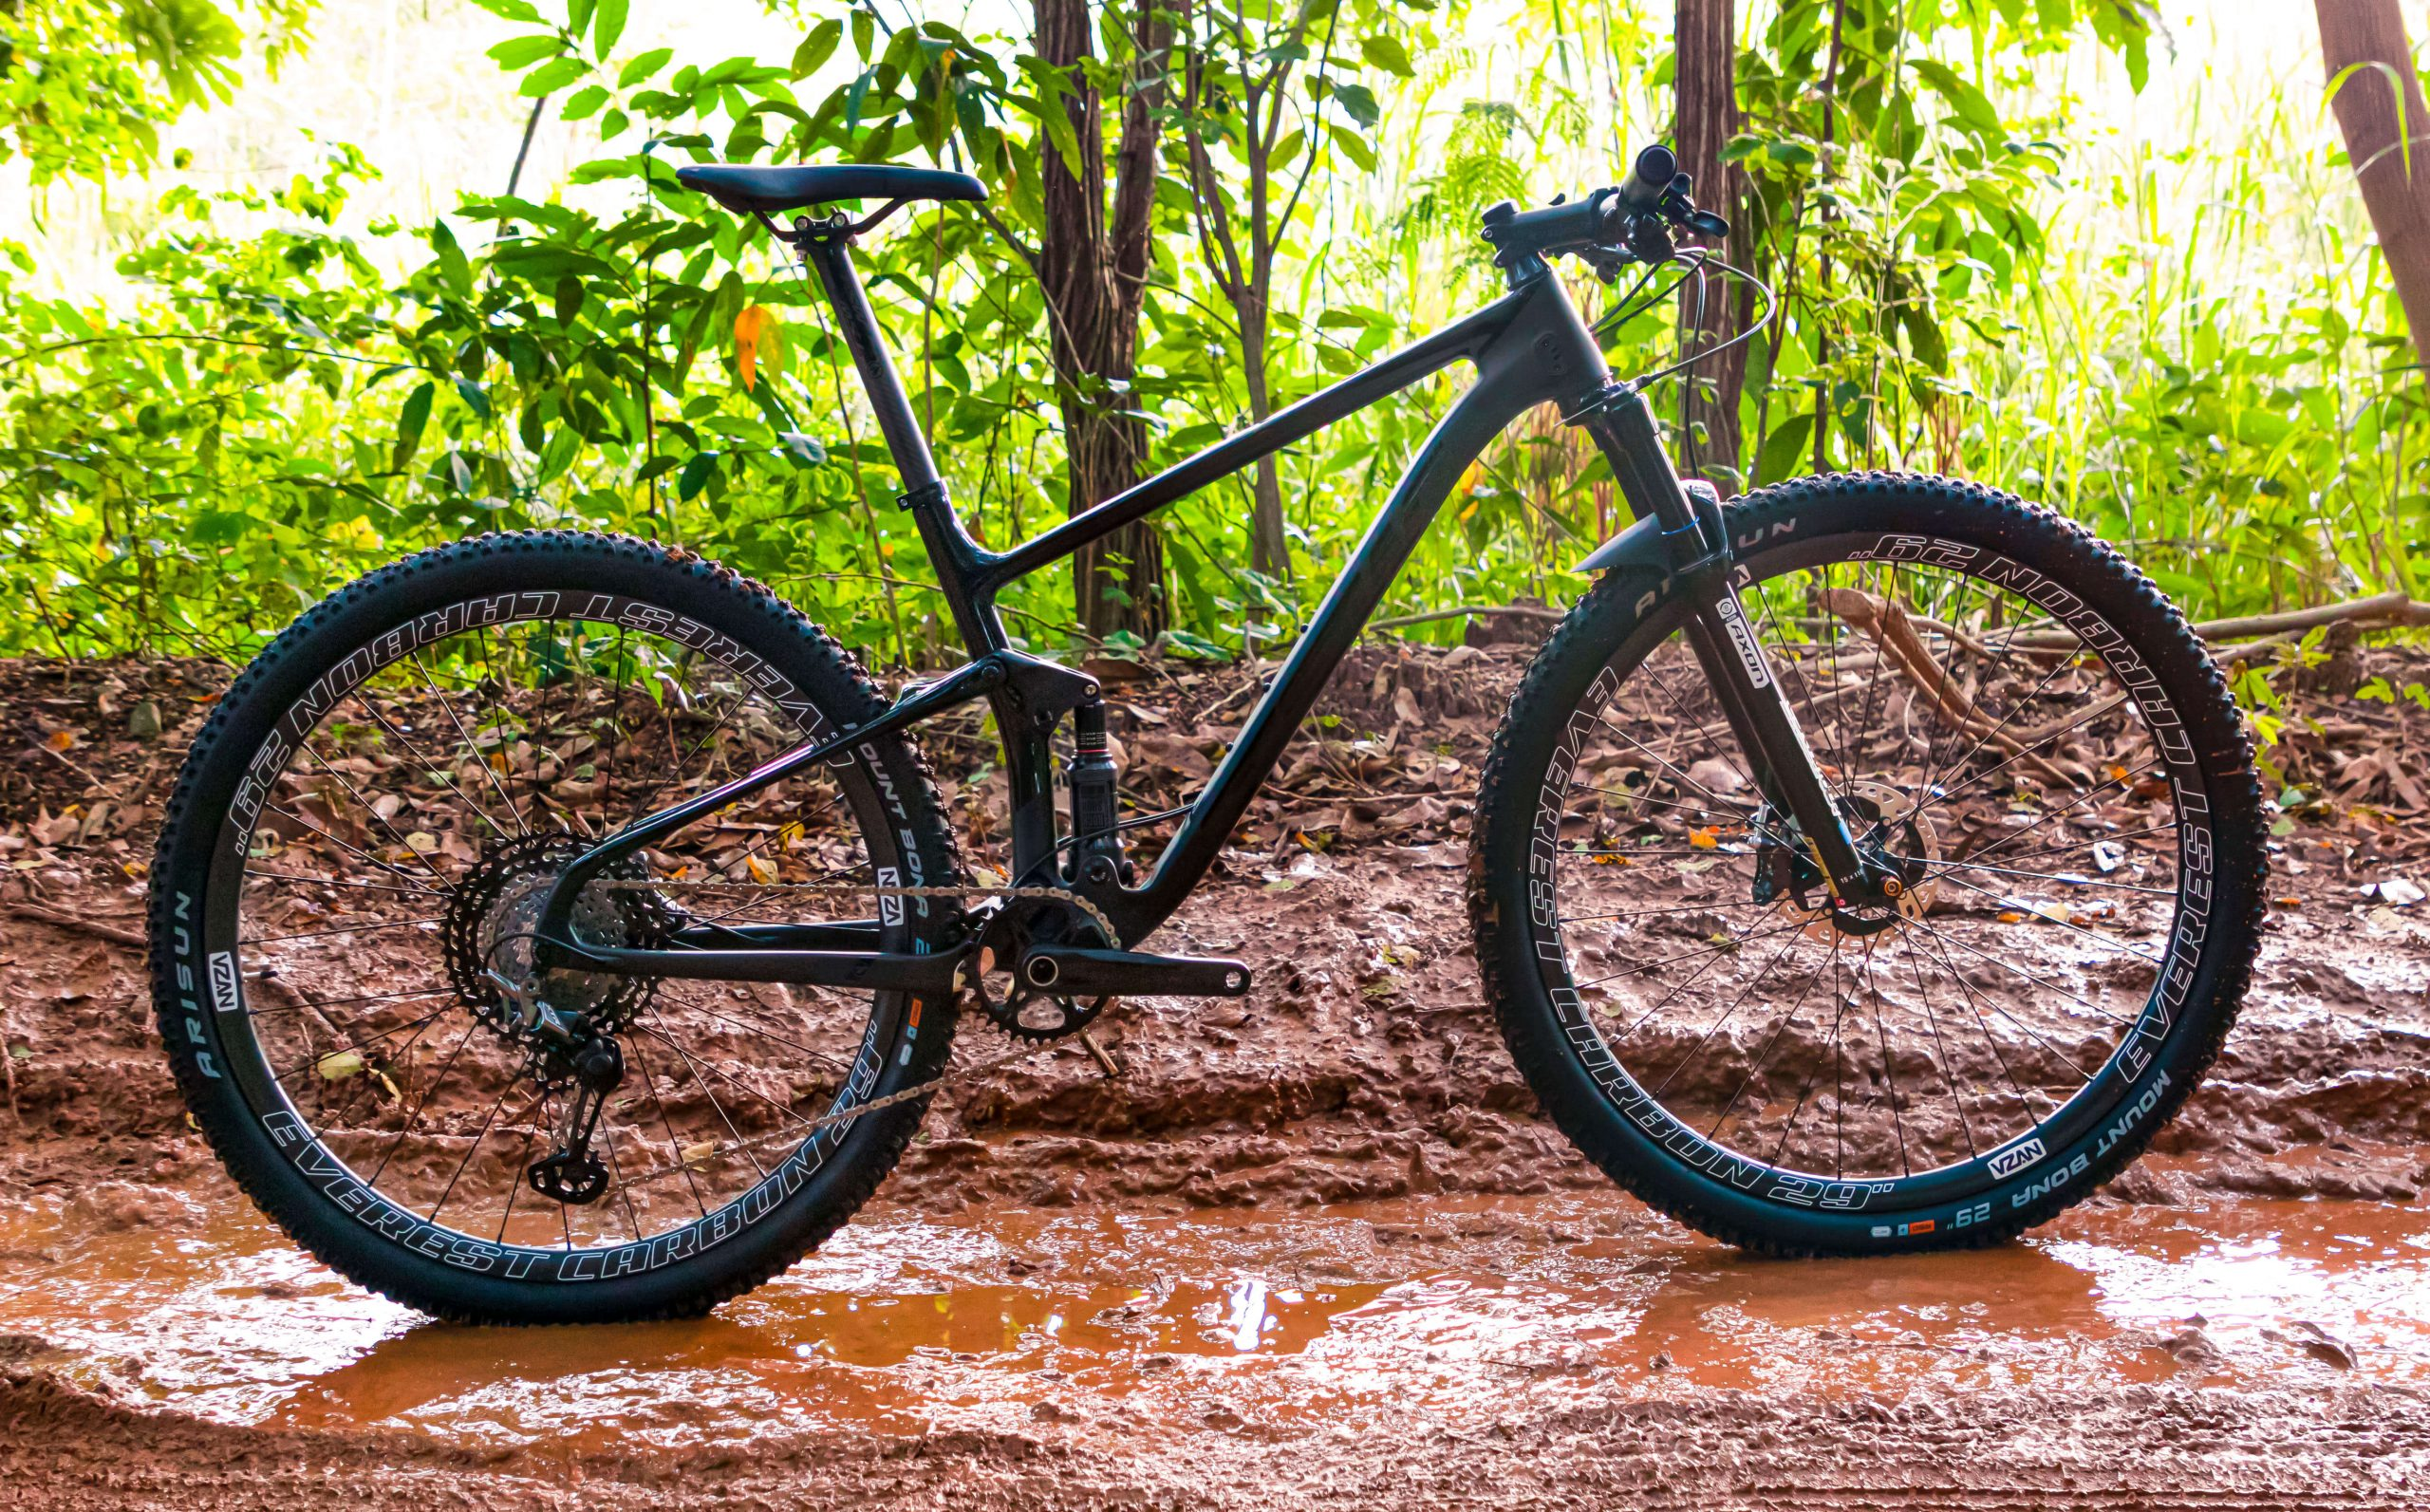 TSW Racing Team e Shimano Brasil | Made for Trails!